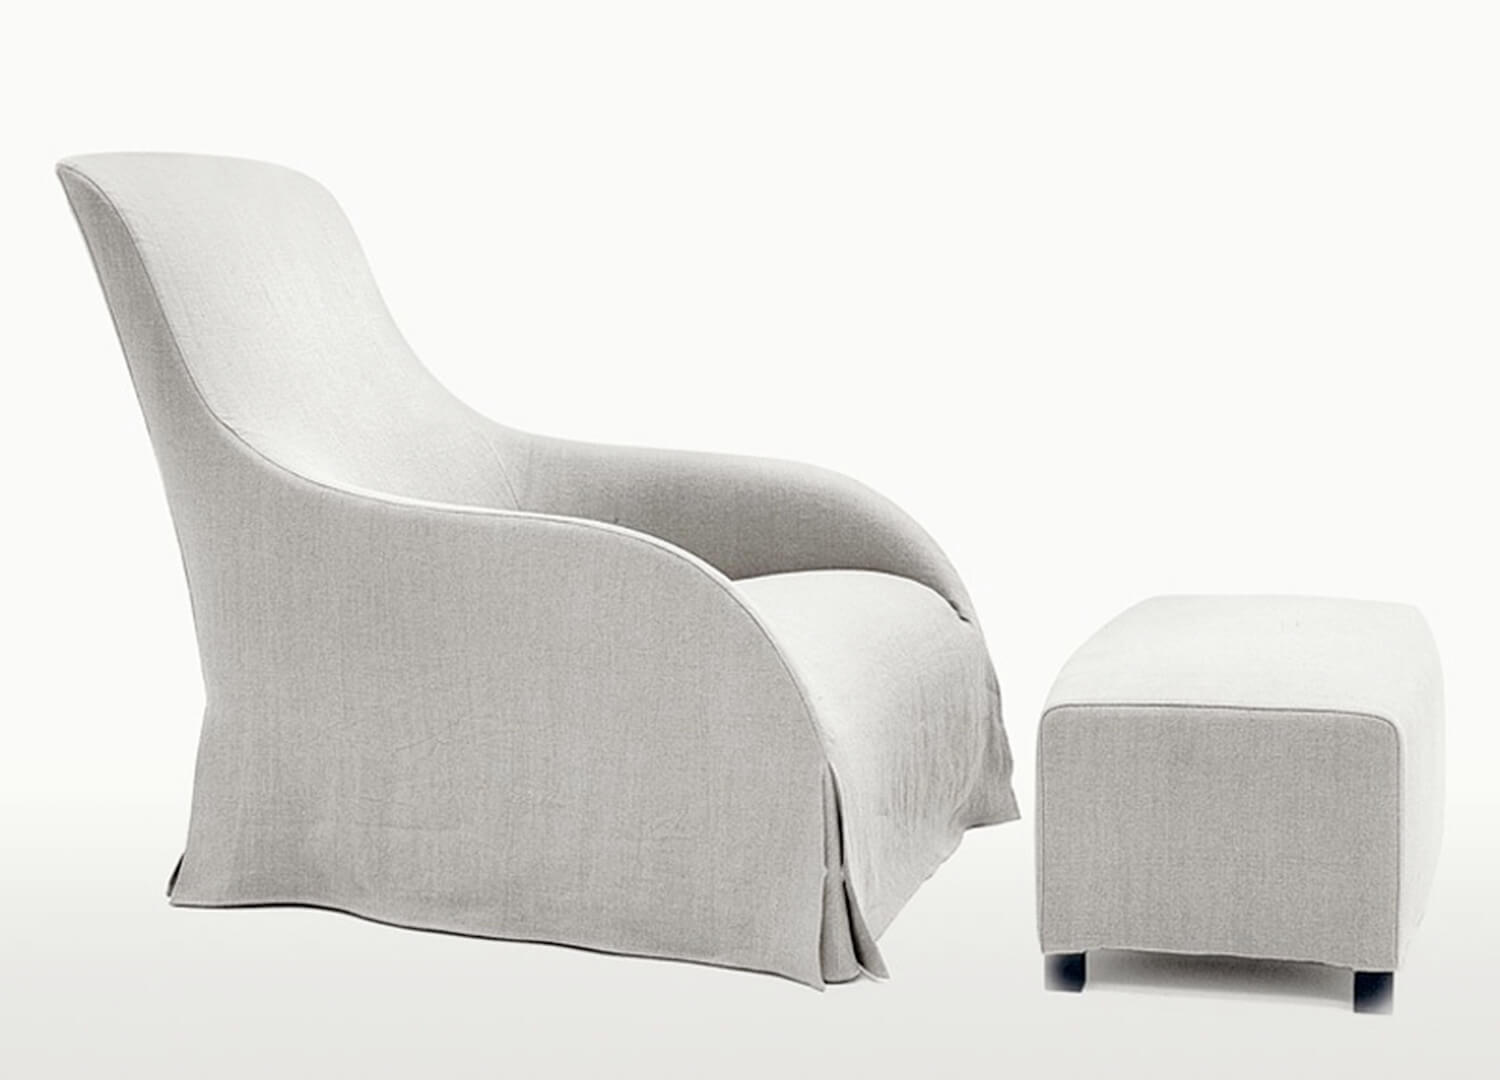 Kalos Armchair by Antonio Citterio | Space